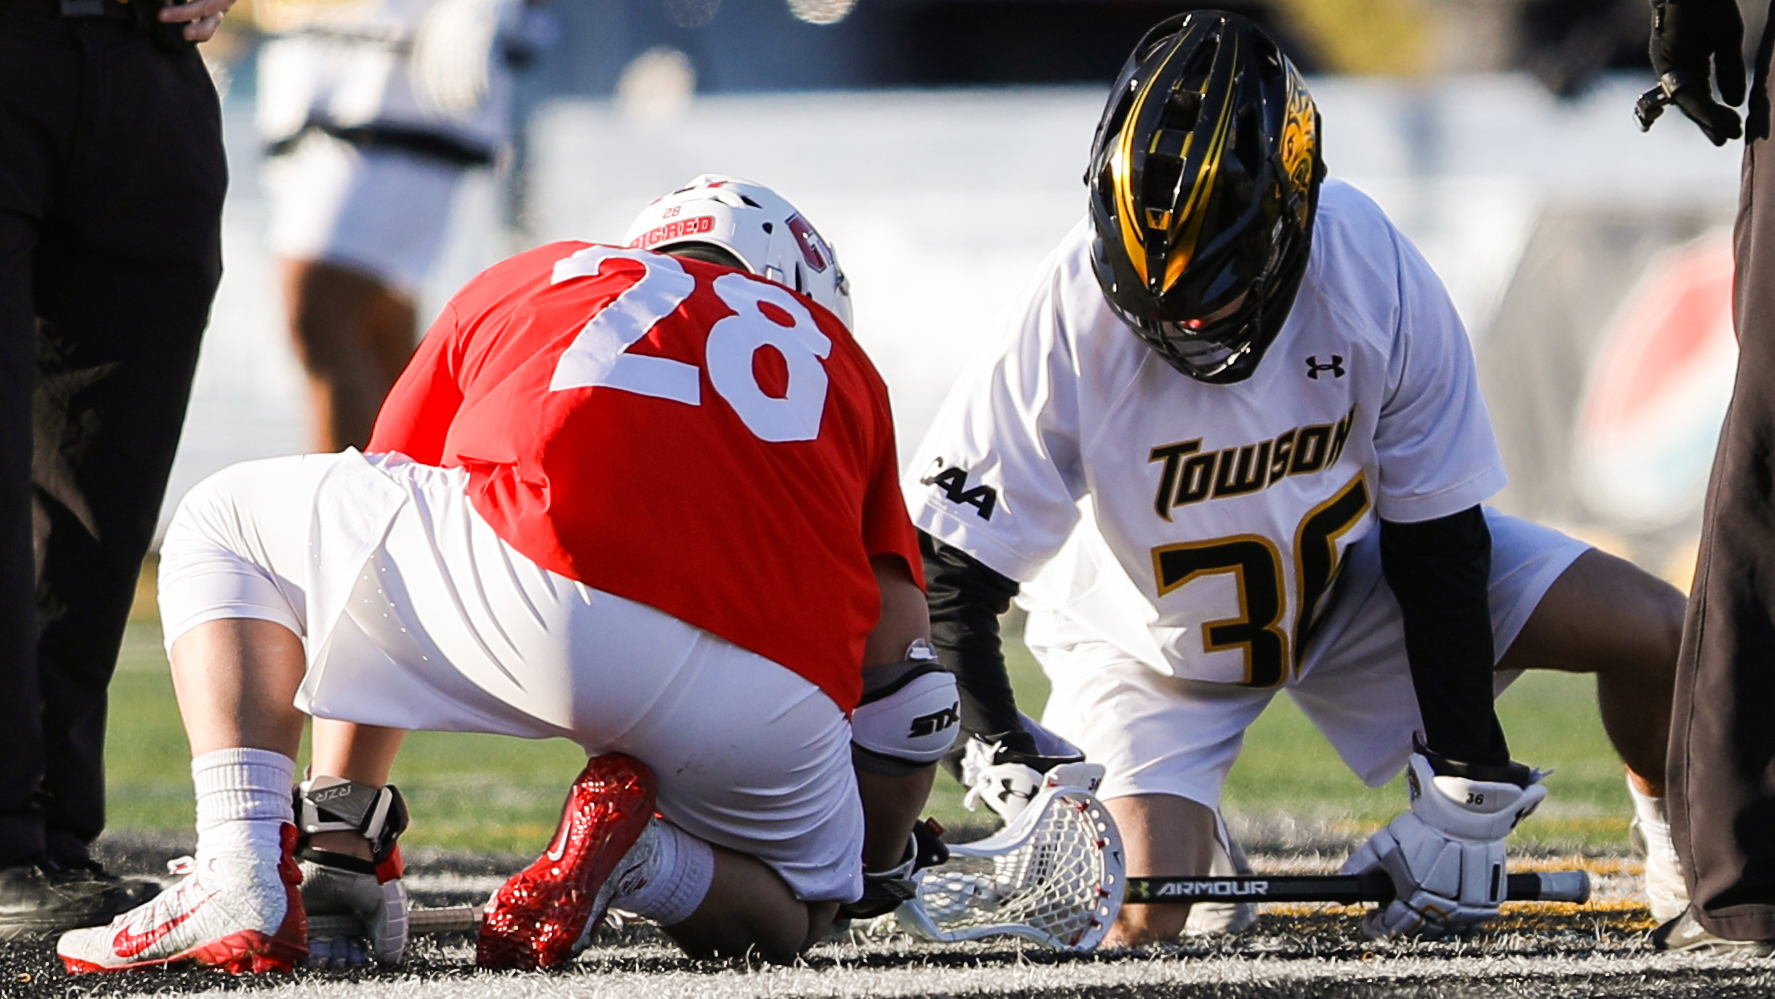 Angelo Petrakis takes the face-off during the Cornell Big Red men's lacrosse team's contest against Towson on the road on Feb. 21, 2020, in Baltimore, Md.